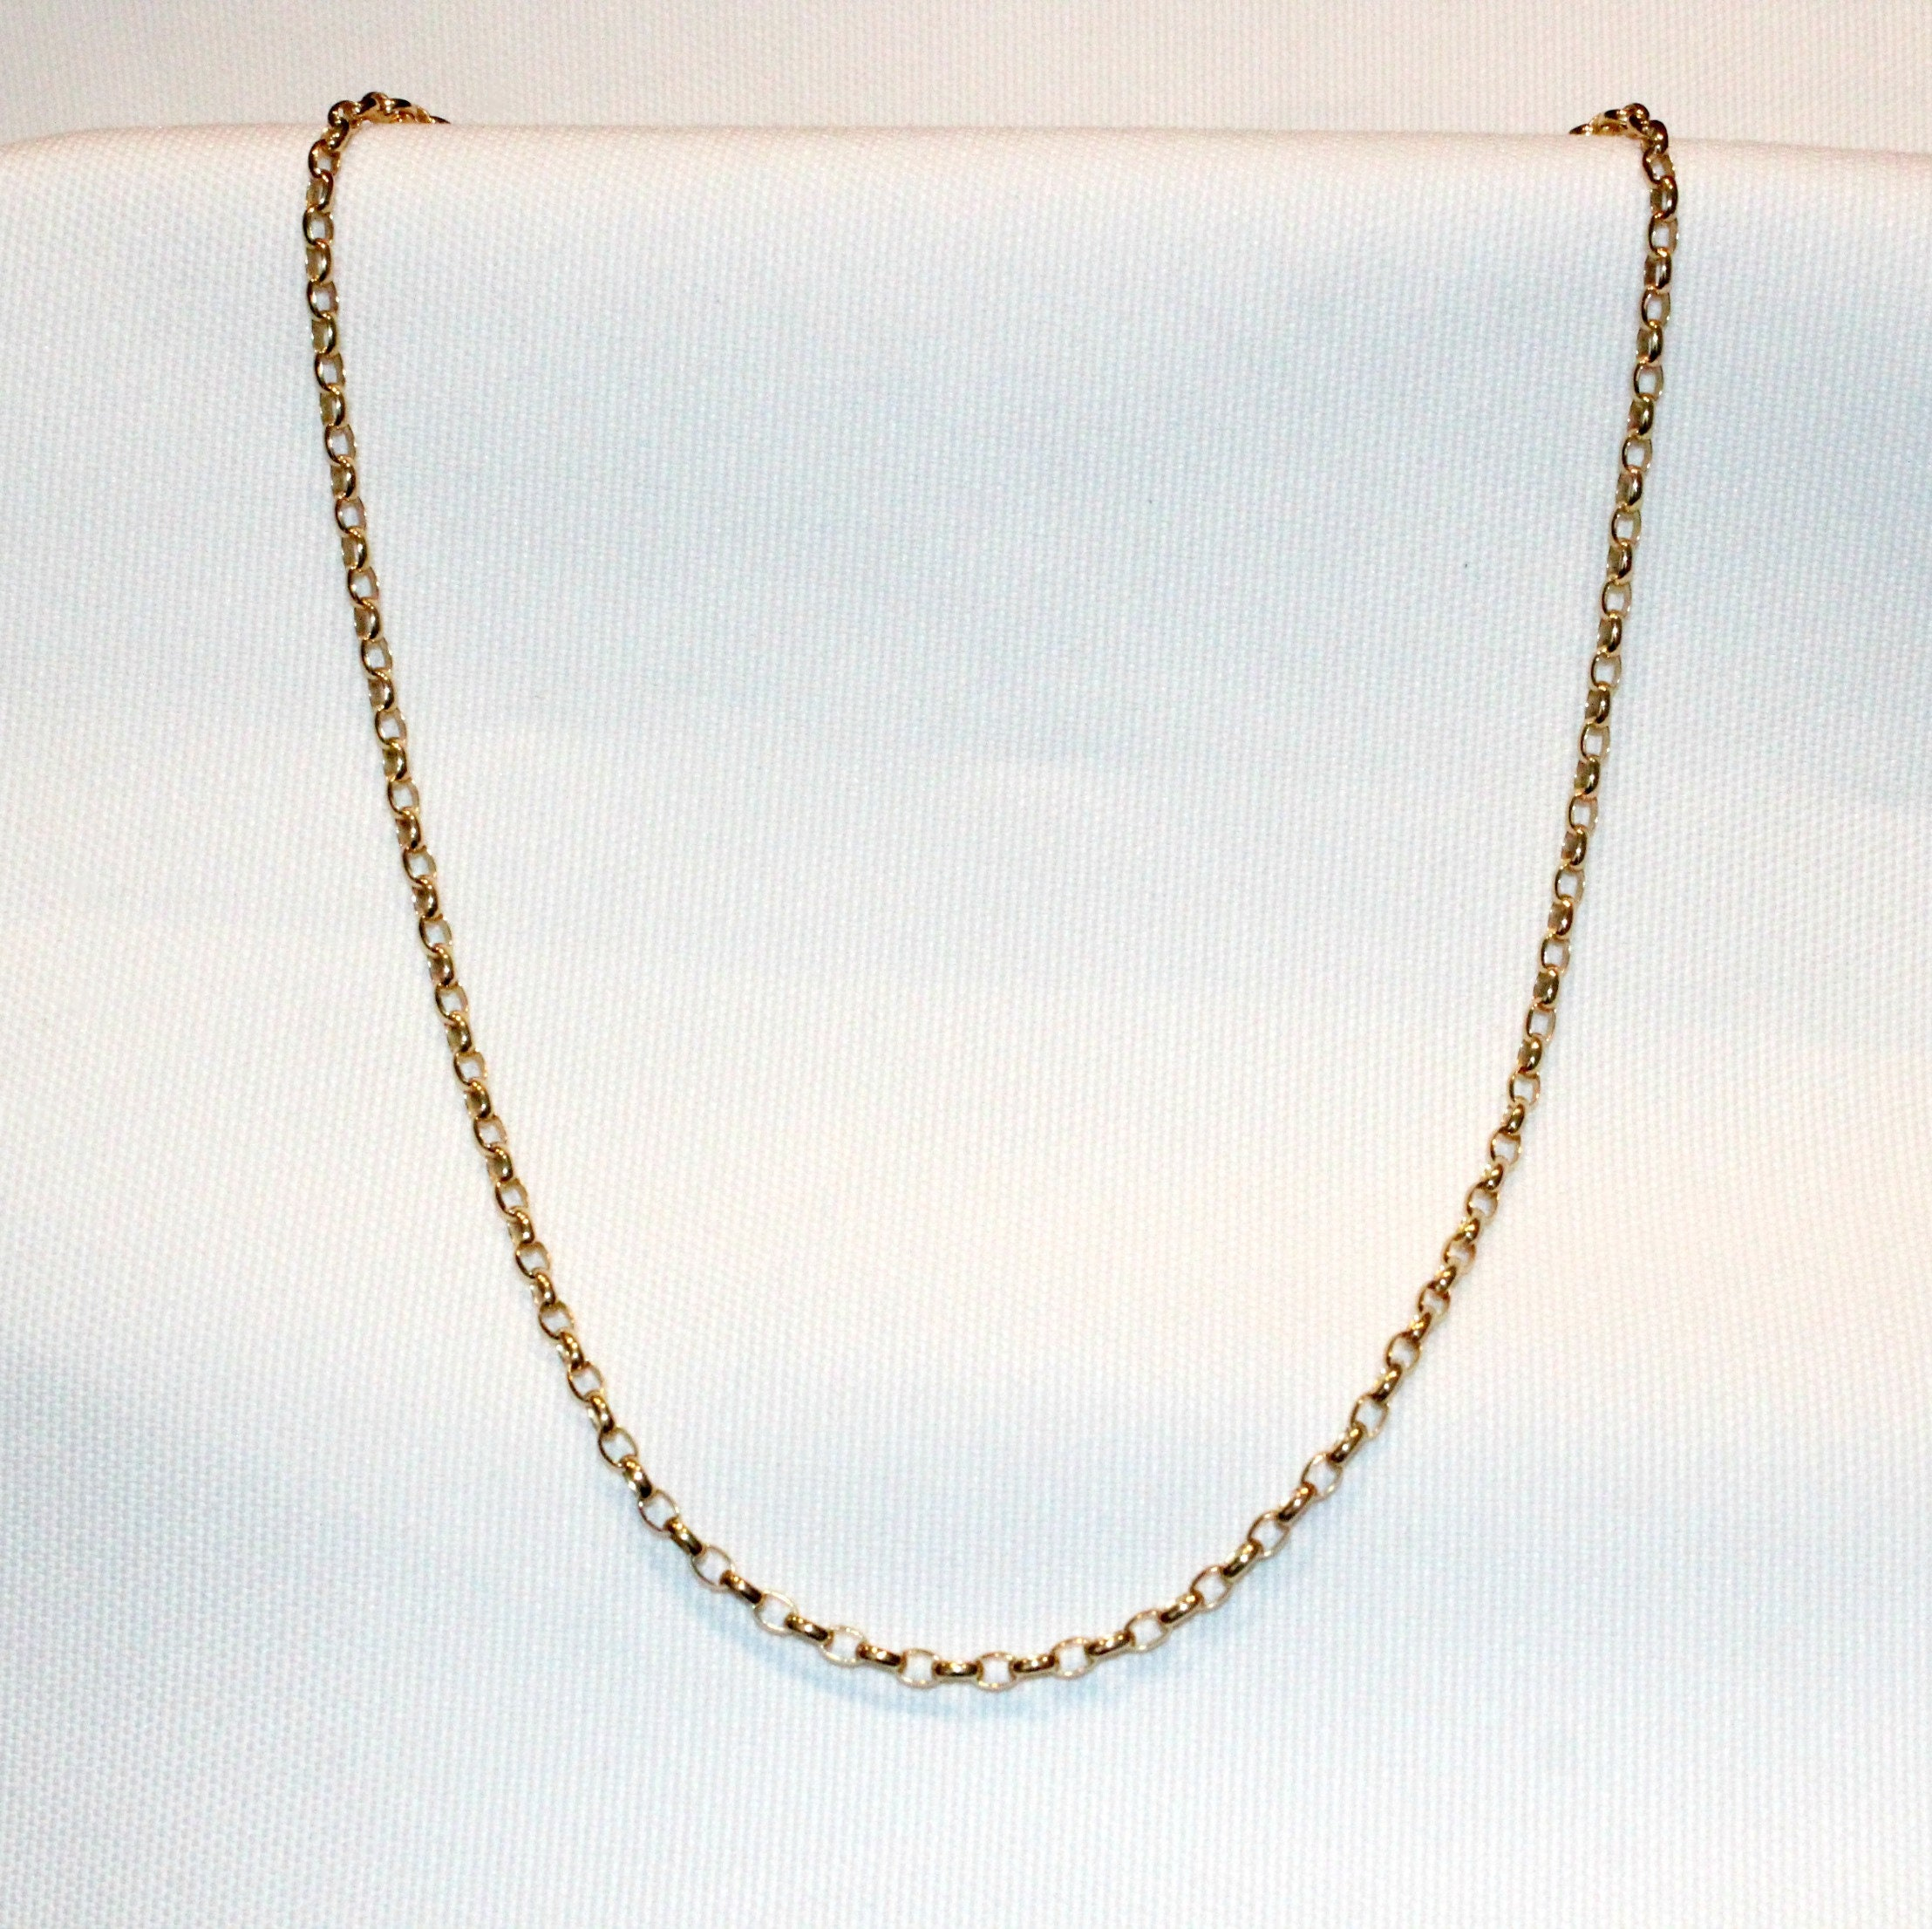 Details about  /9ct Solid Oval Belcher Chain 85 Gauge